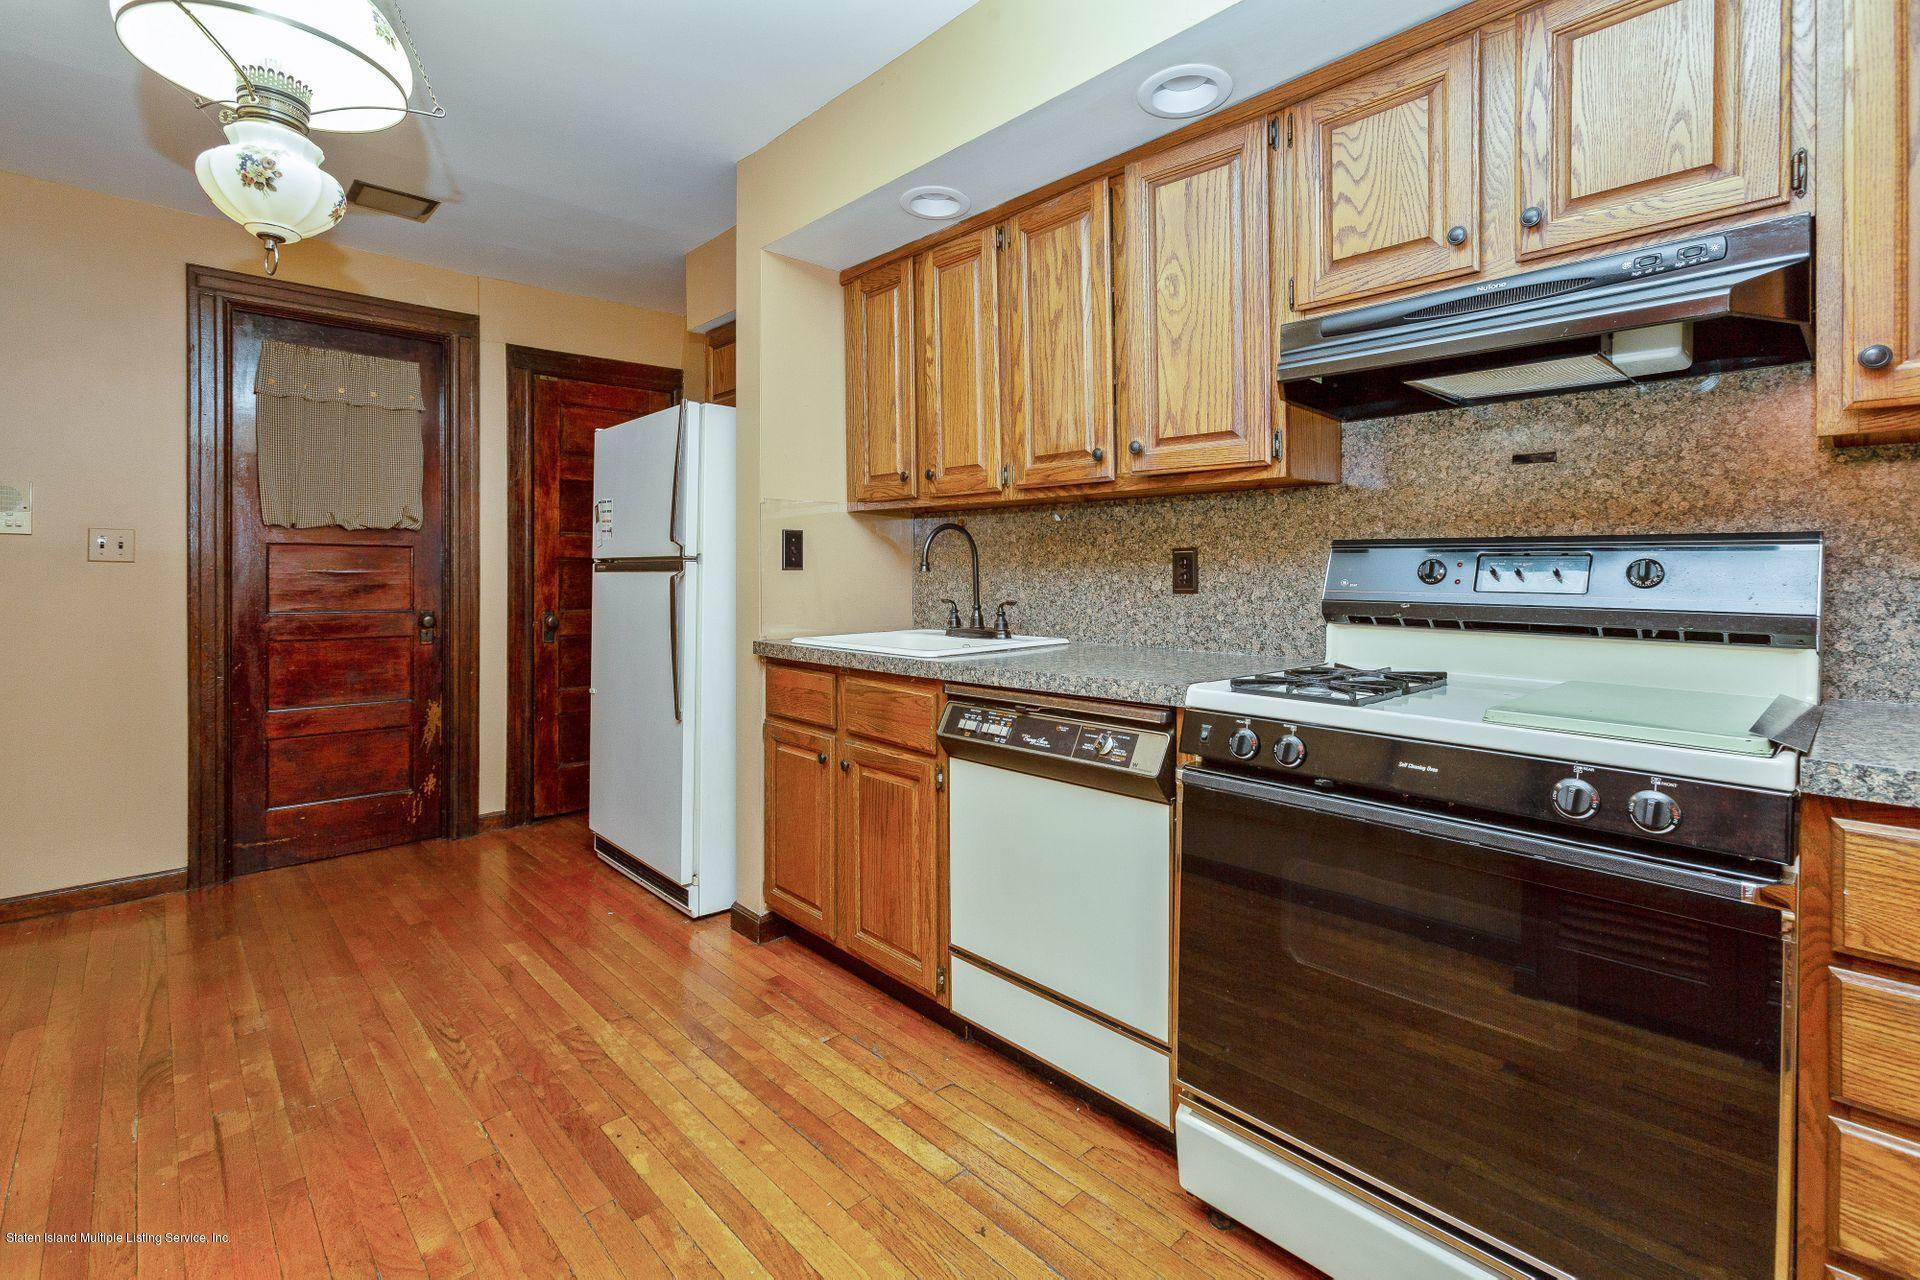 Single Family - Attached 83 Chester Avenue  Brooklyn, NY 11218, MLS-1134106-5